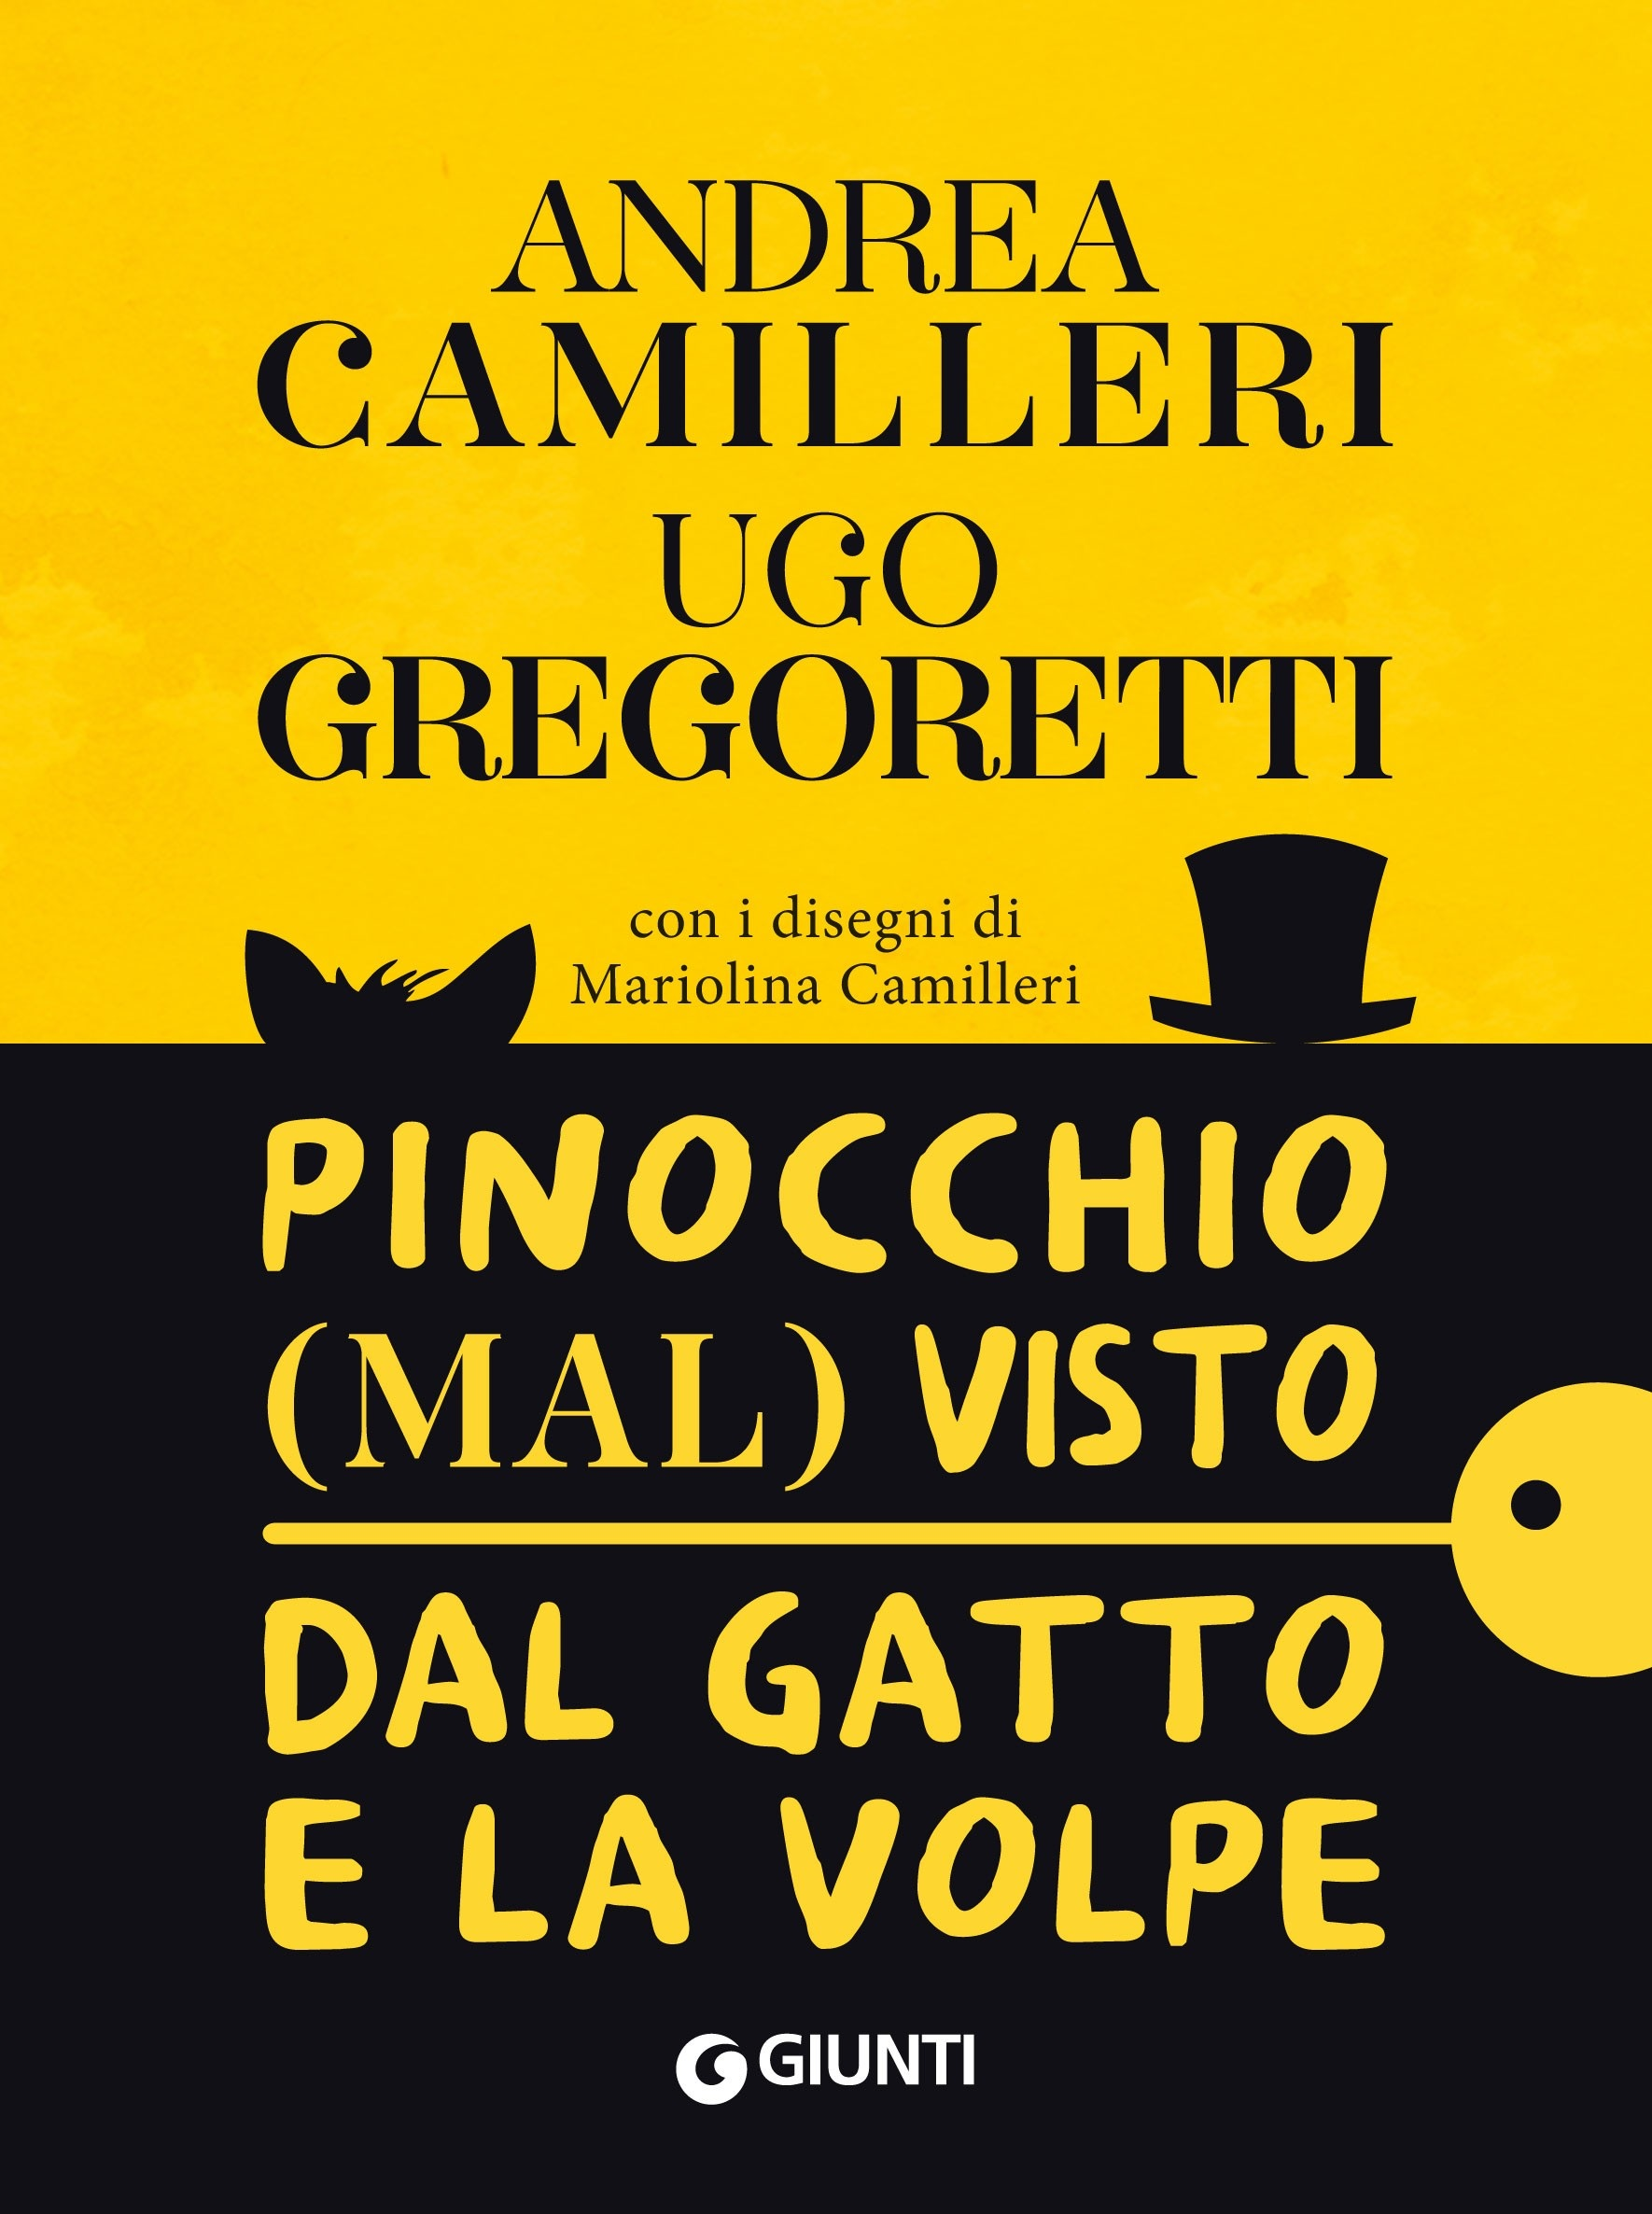 Pinocchio (mal) visto dal gatto e la volpe 1st Edition Pdf Free Download